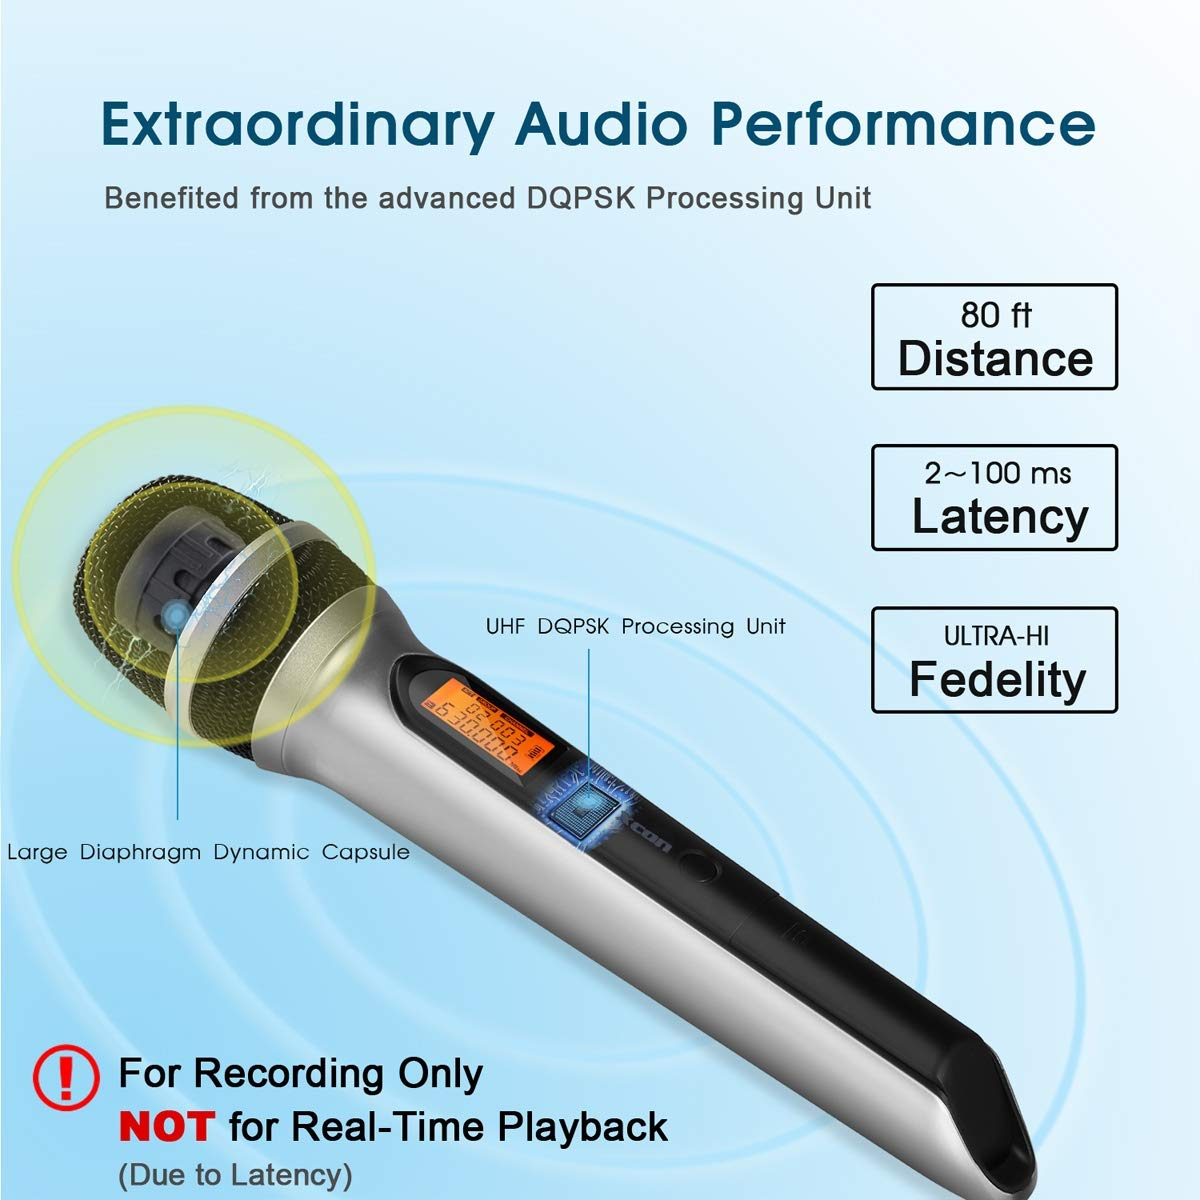 System with USB Receiver Vlogging PC Computer Gaming Vocal Recording PA Alvoxcon UHF Unidirectional mic for Android USB Wireless Microphone Singing Practice Laptop YouTube Podcasting